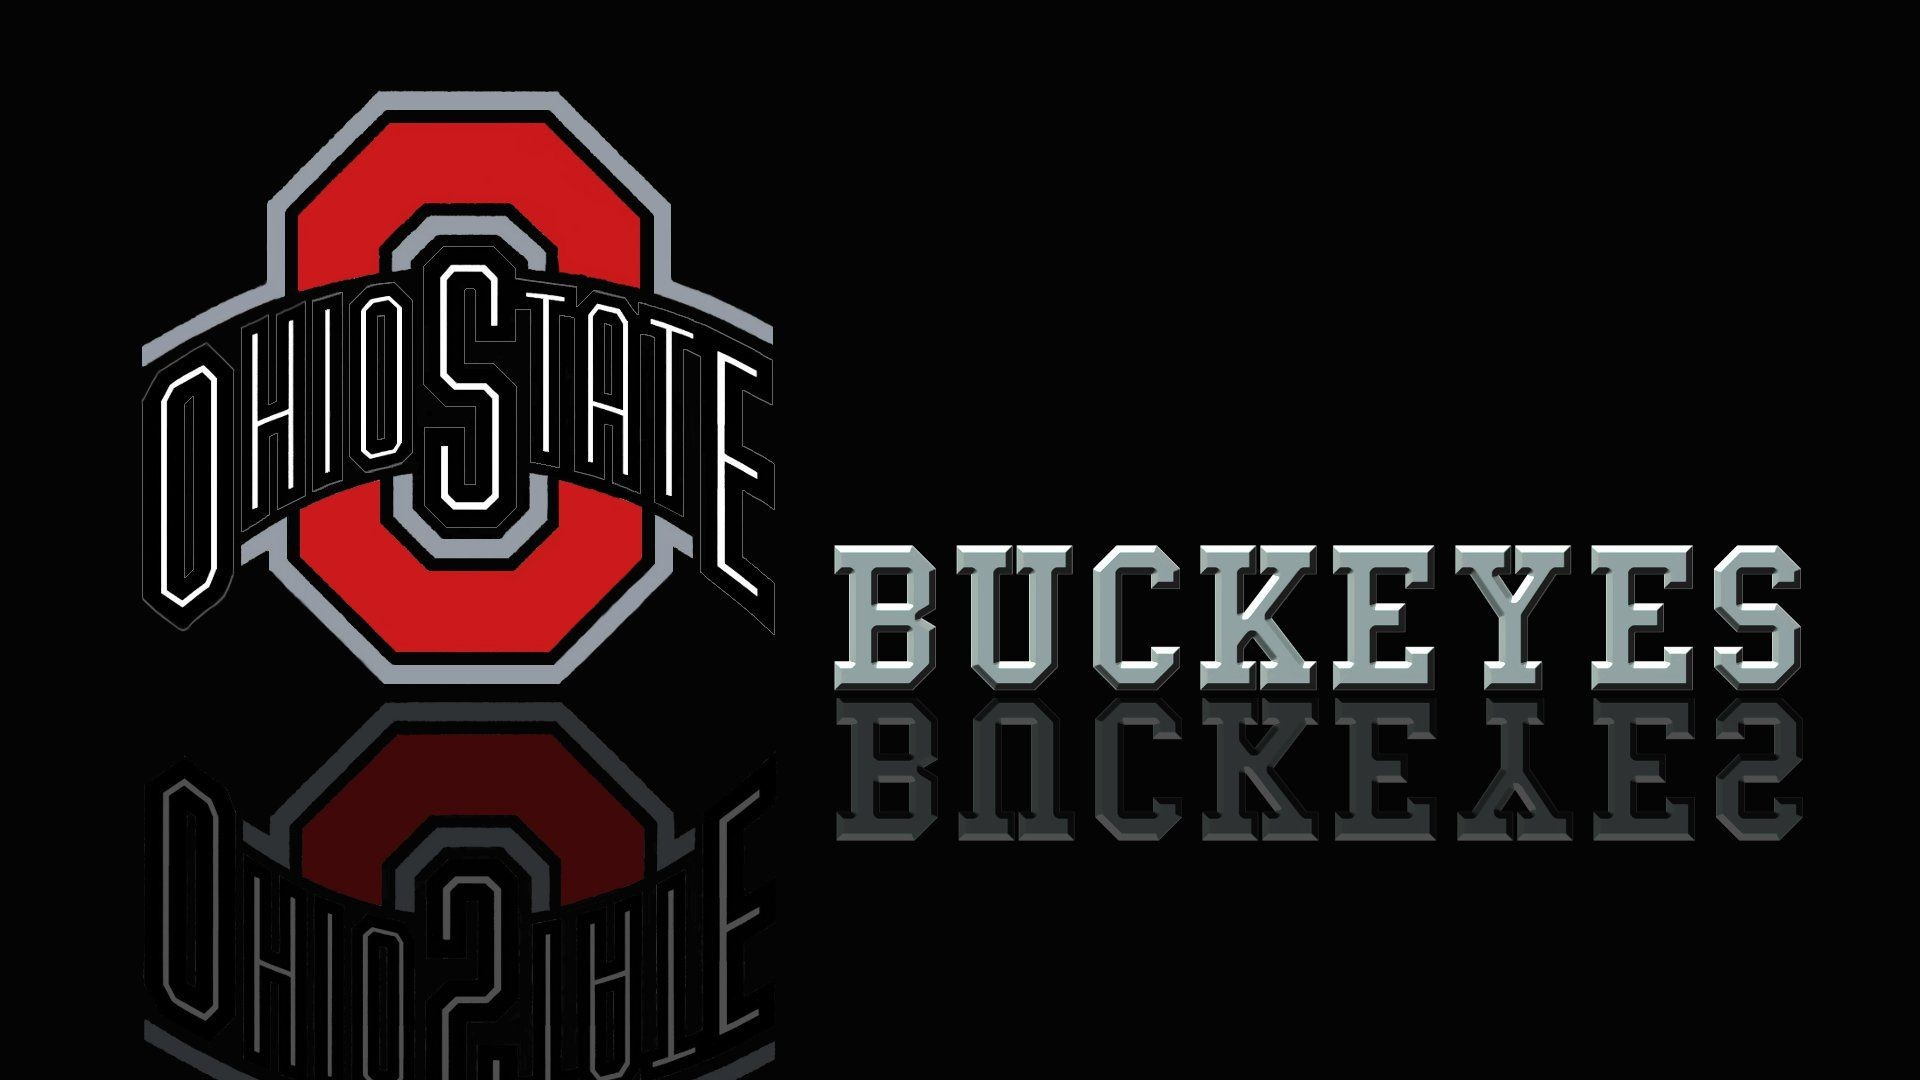 1920x1080 Ohio State Buckeyes Football Wallpapers - Wallpaper Cave